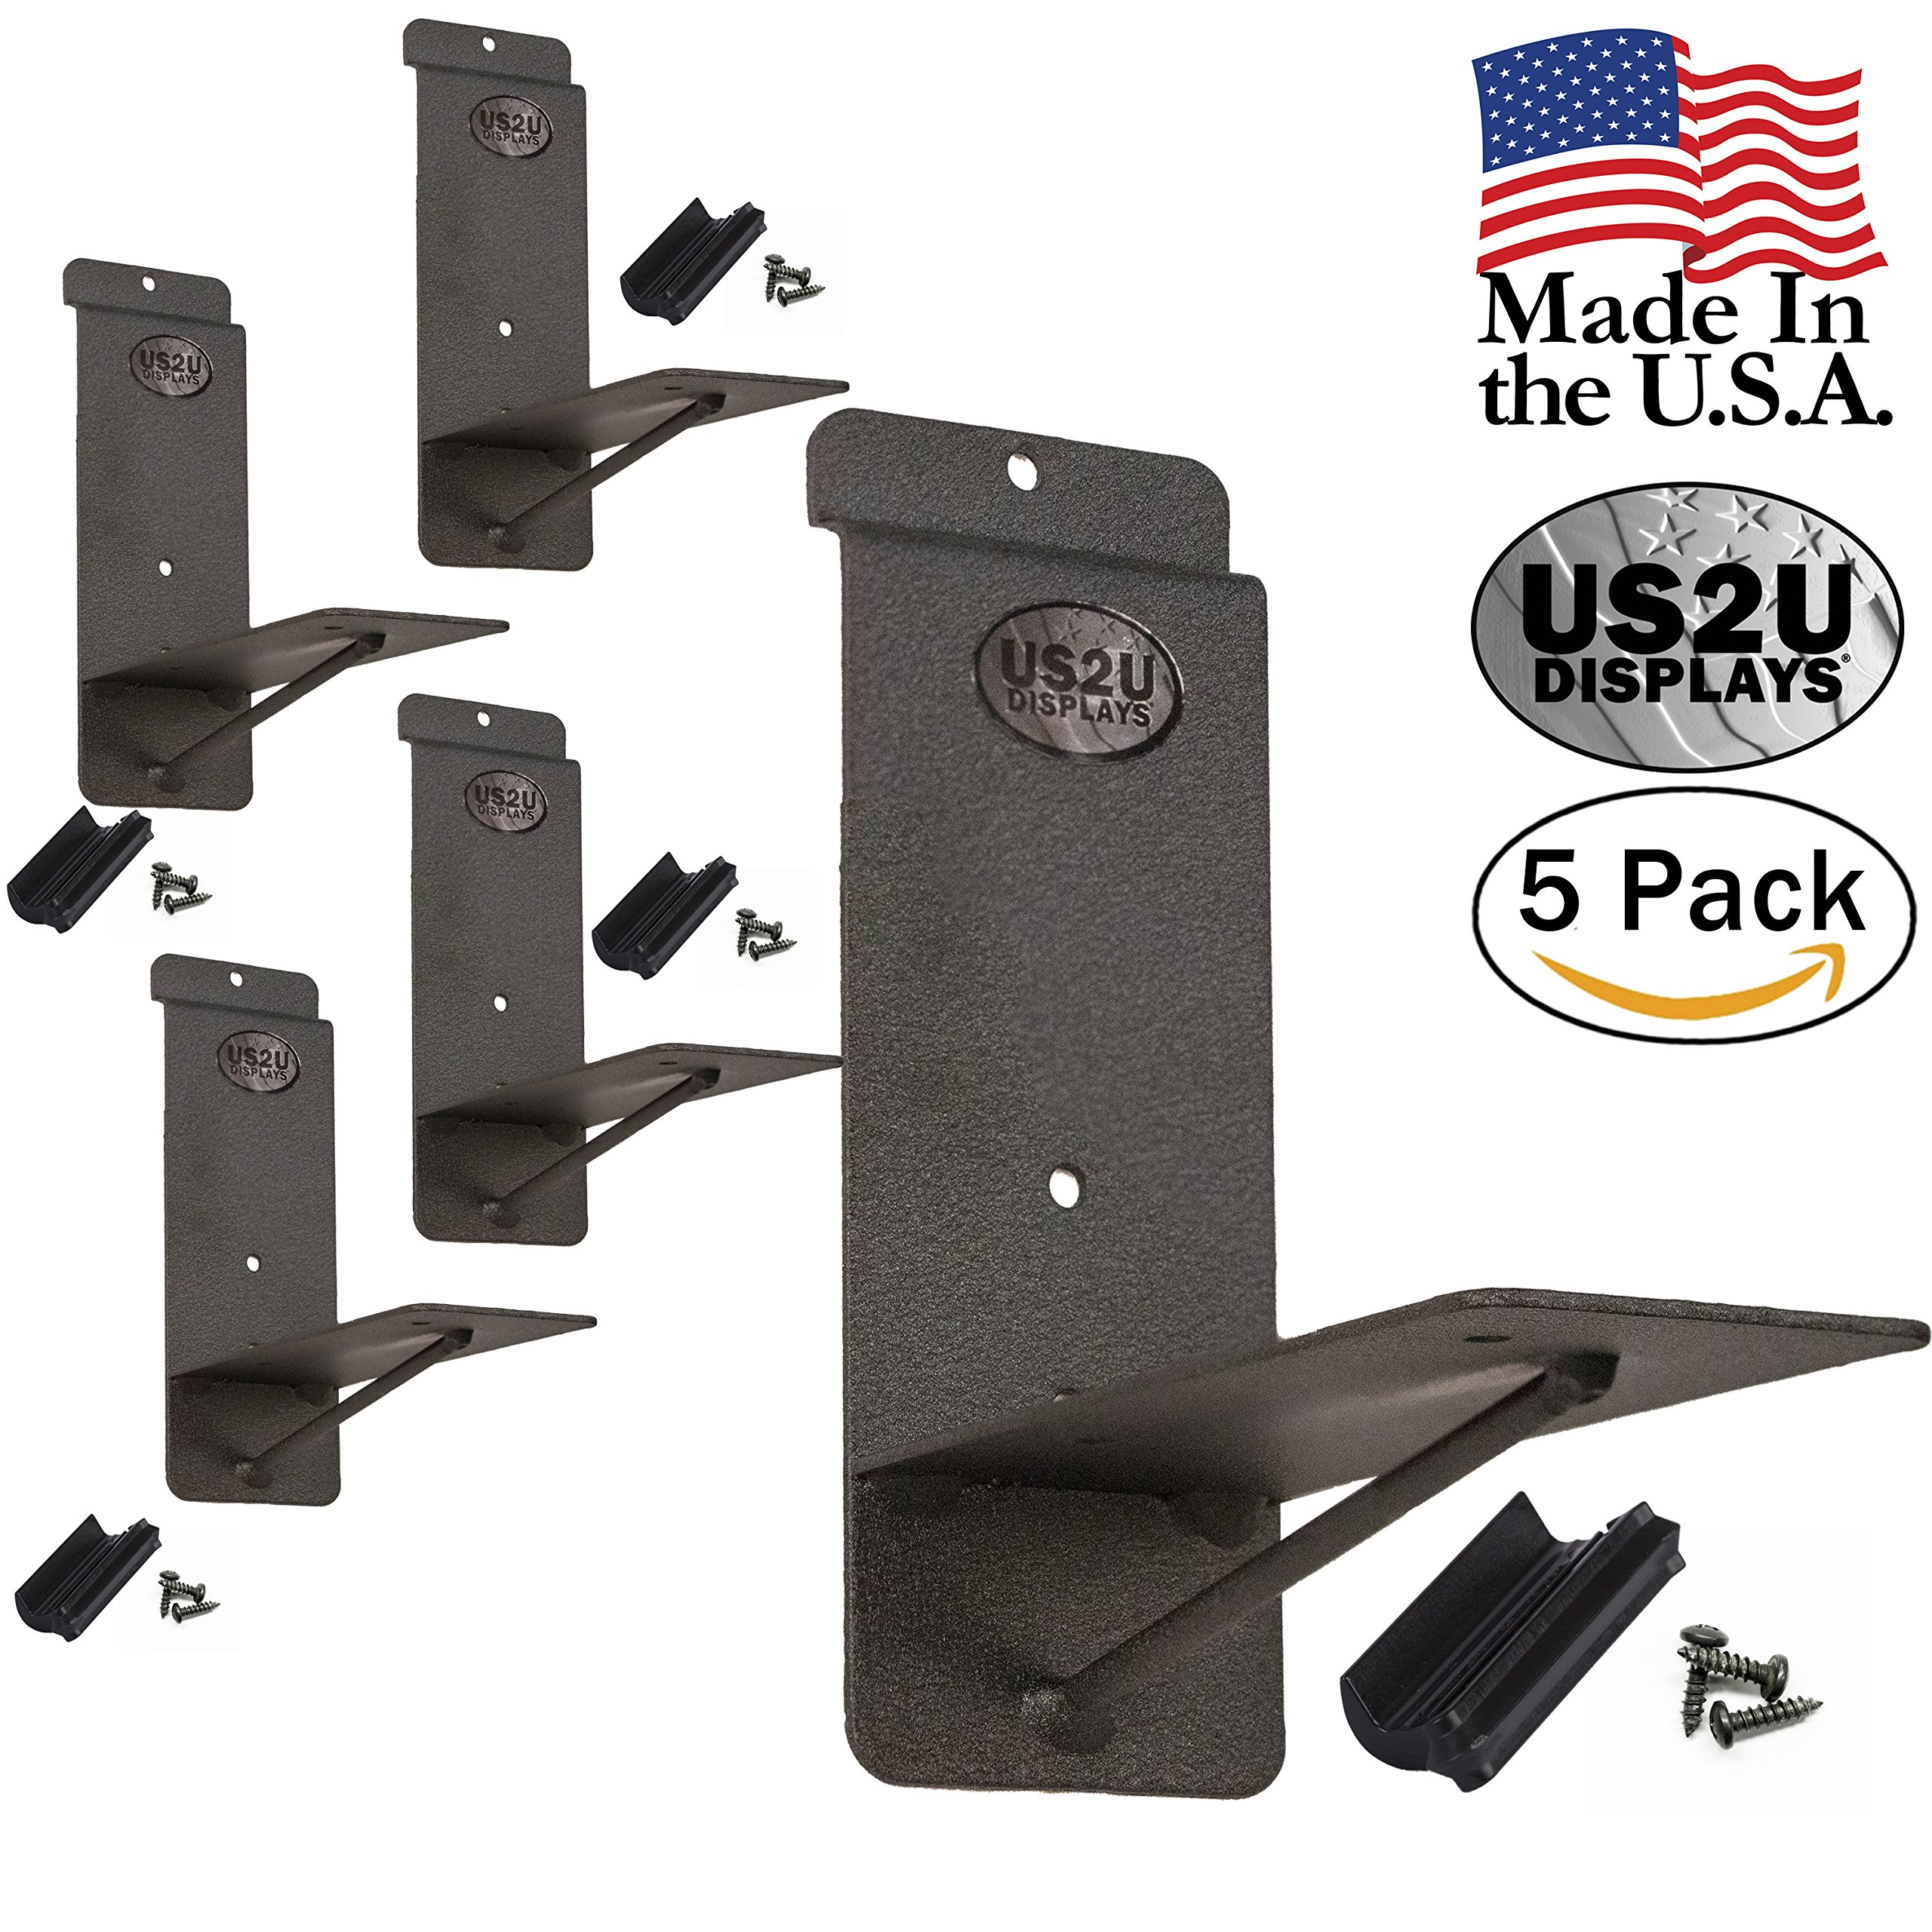 US2U Displays Garage Shelving Bracket – 5 PACK - 5 Inch Heavy Duty for Slatwall Wall Tool Organizer and Storage Systems – For Industrial Strength Floating Shelf - US05-5-3SW